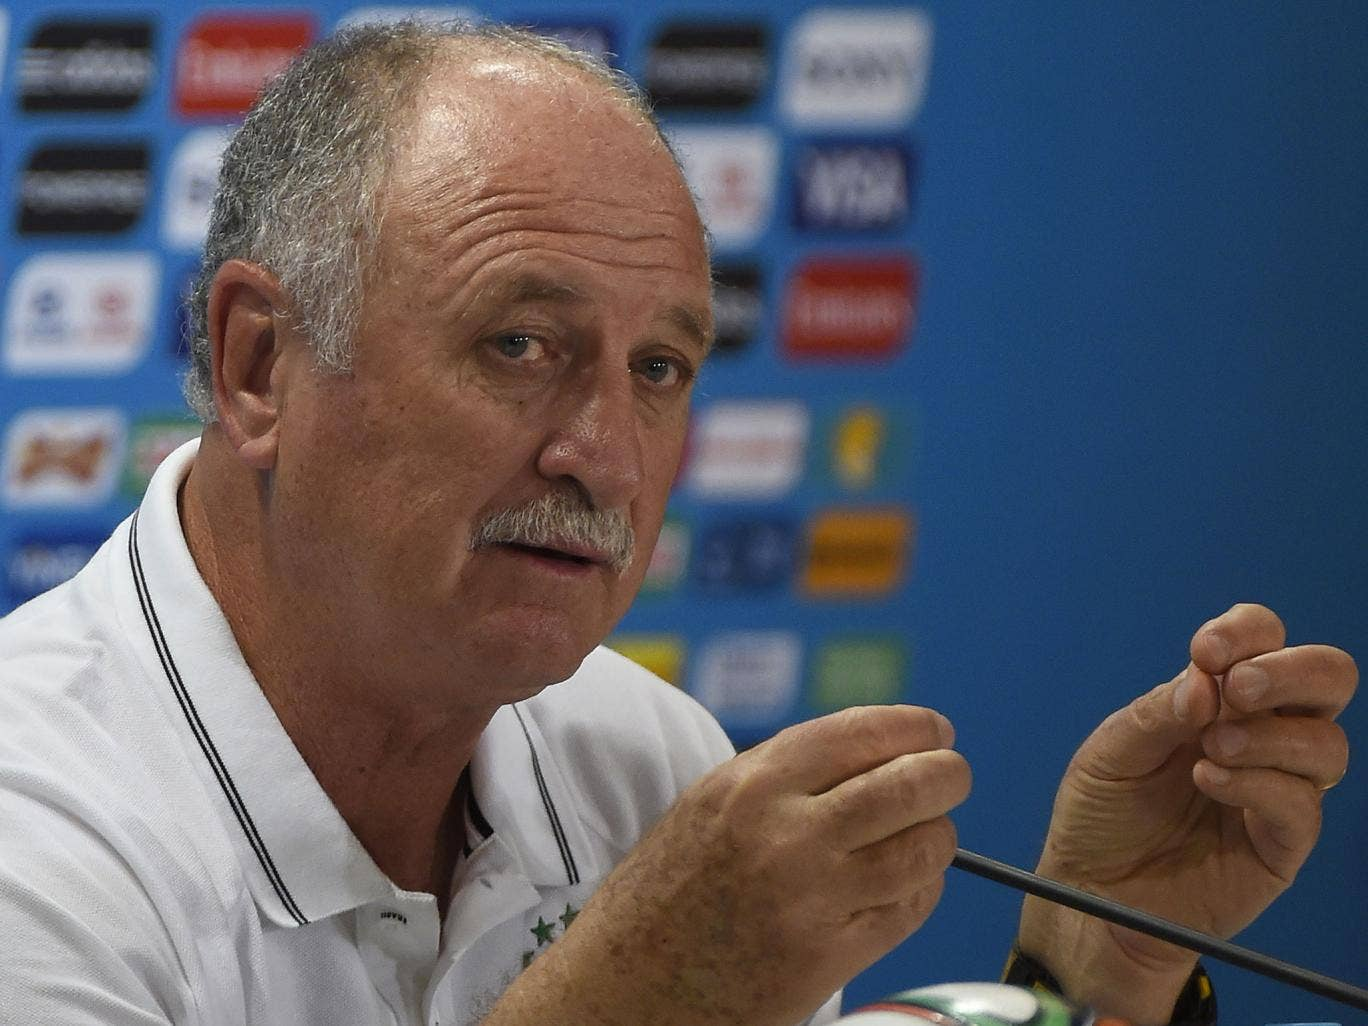 Brazil manager Luis Felipe Scolari does his best attempt to practice lifting the World Cup trophy